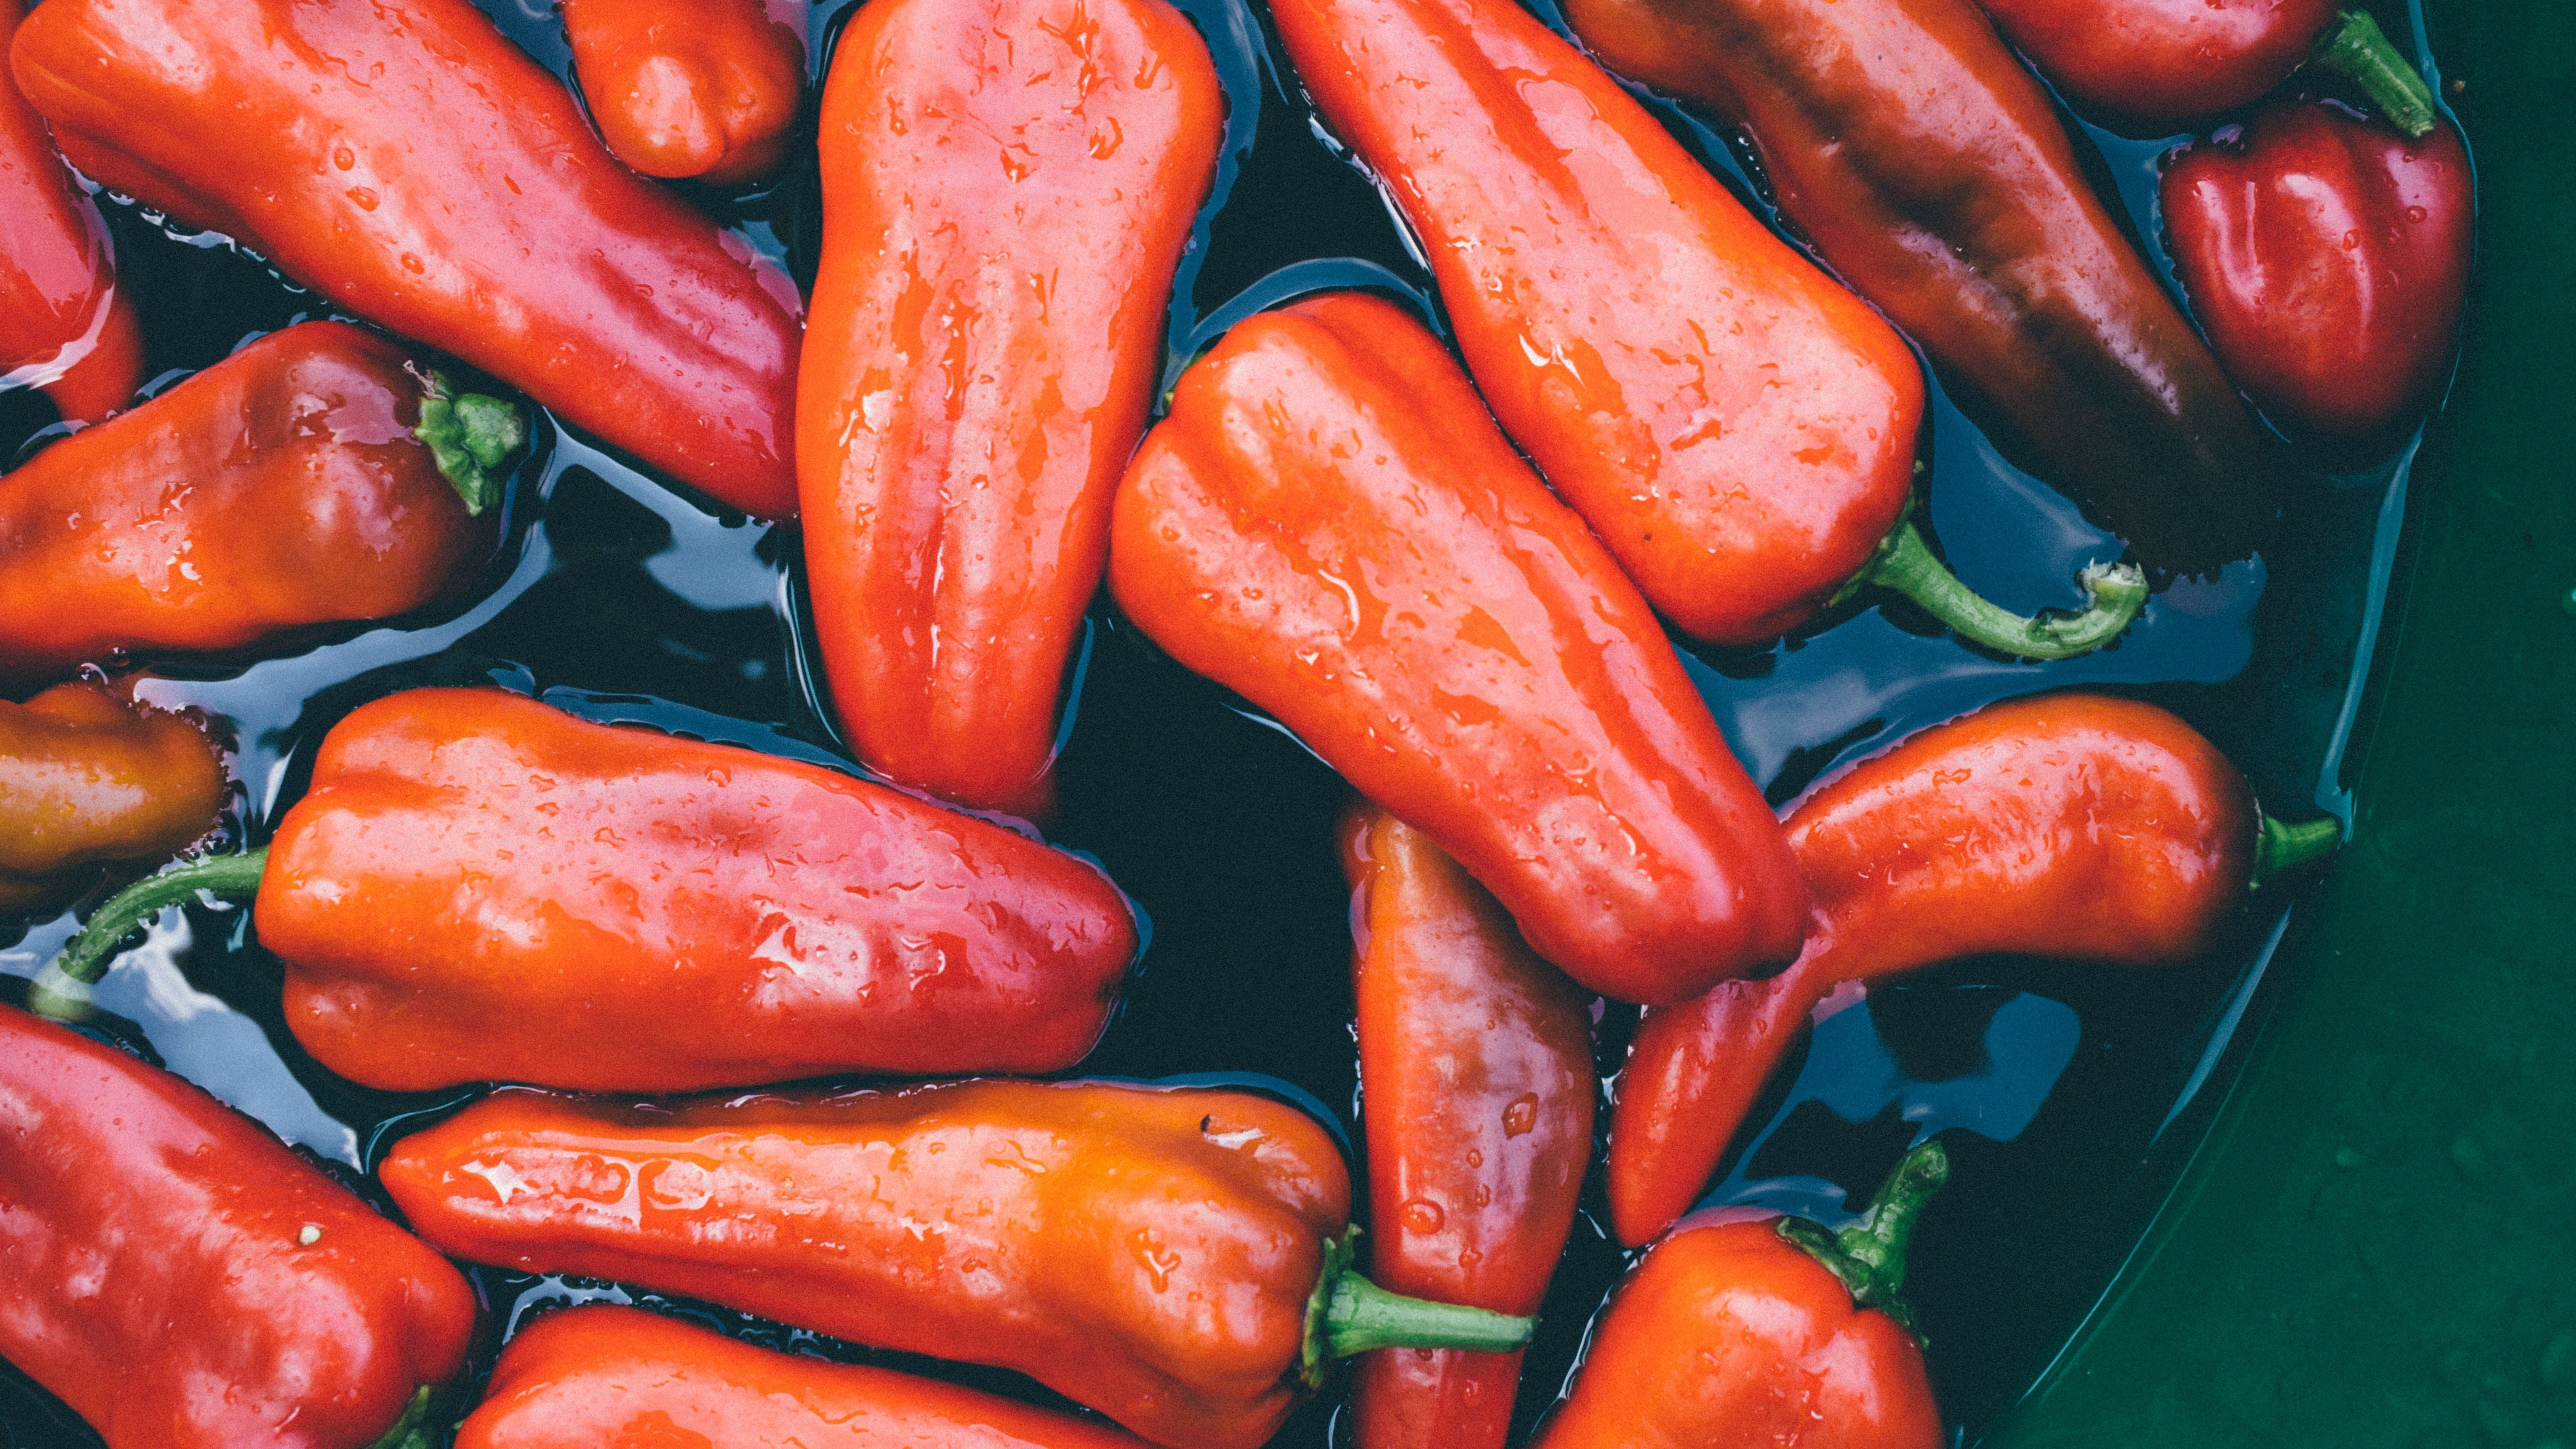 The Easiest Way To Predict A Chilli's Spice Level